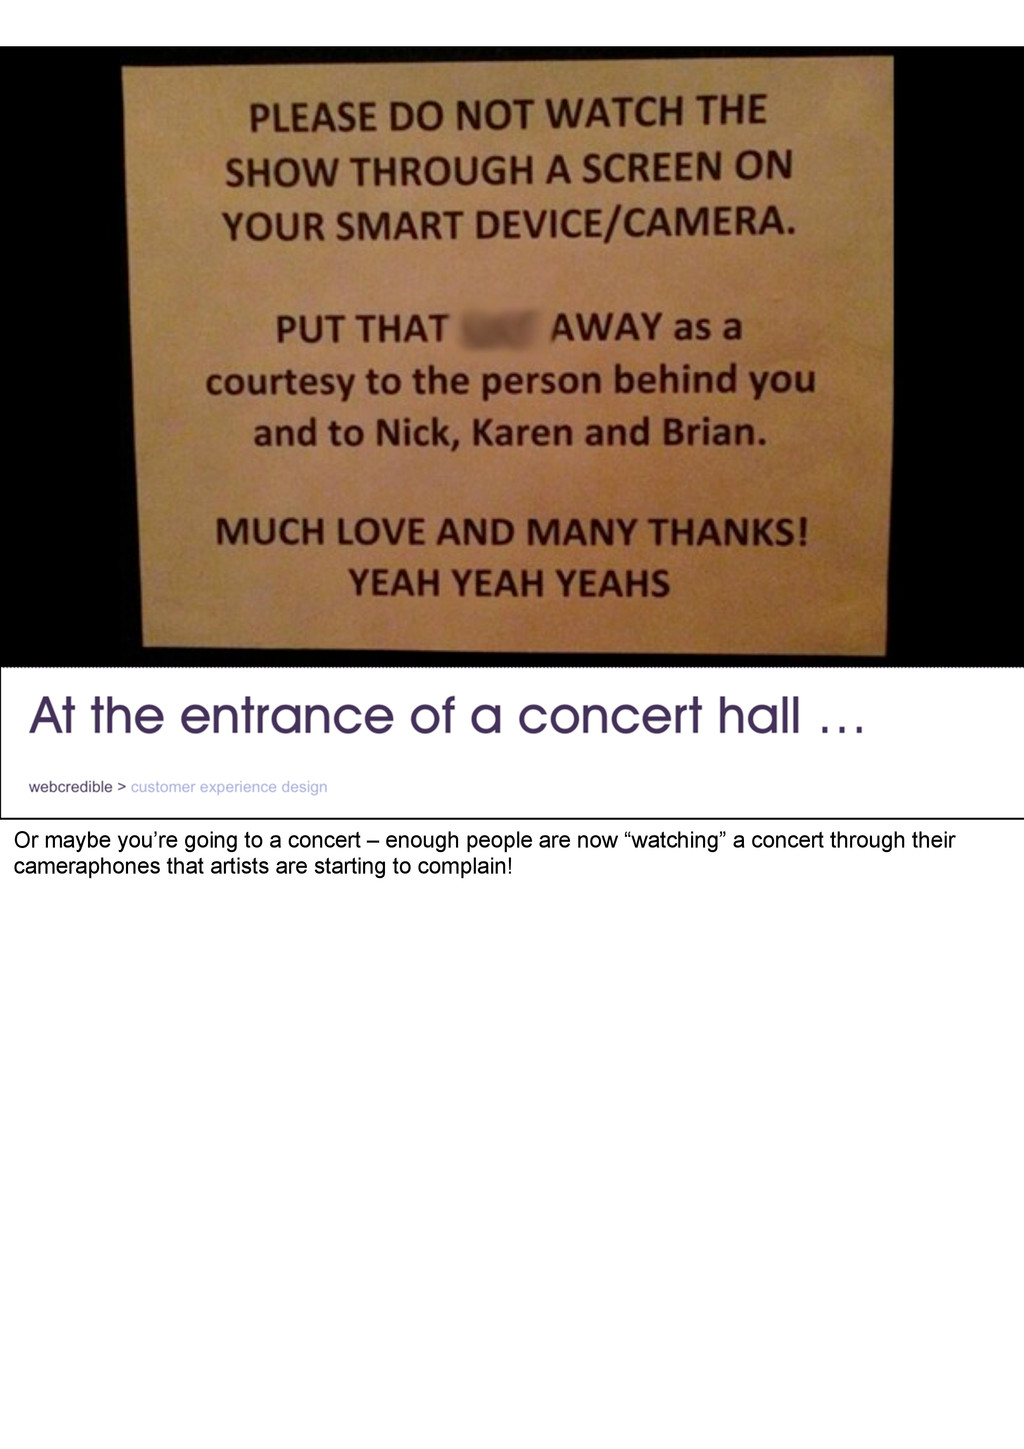 Or maybe you're going to a concert – enough peo...